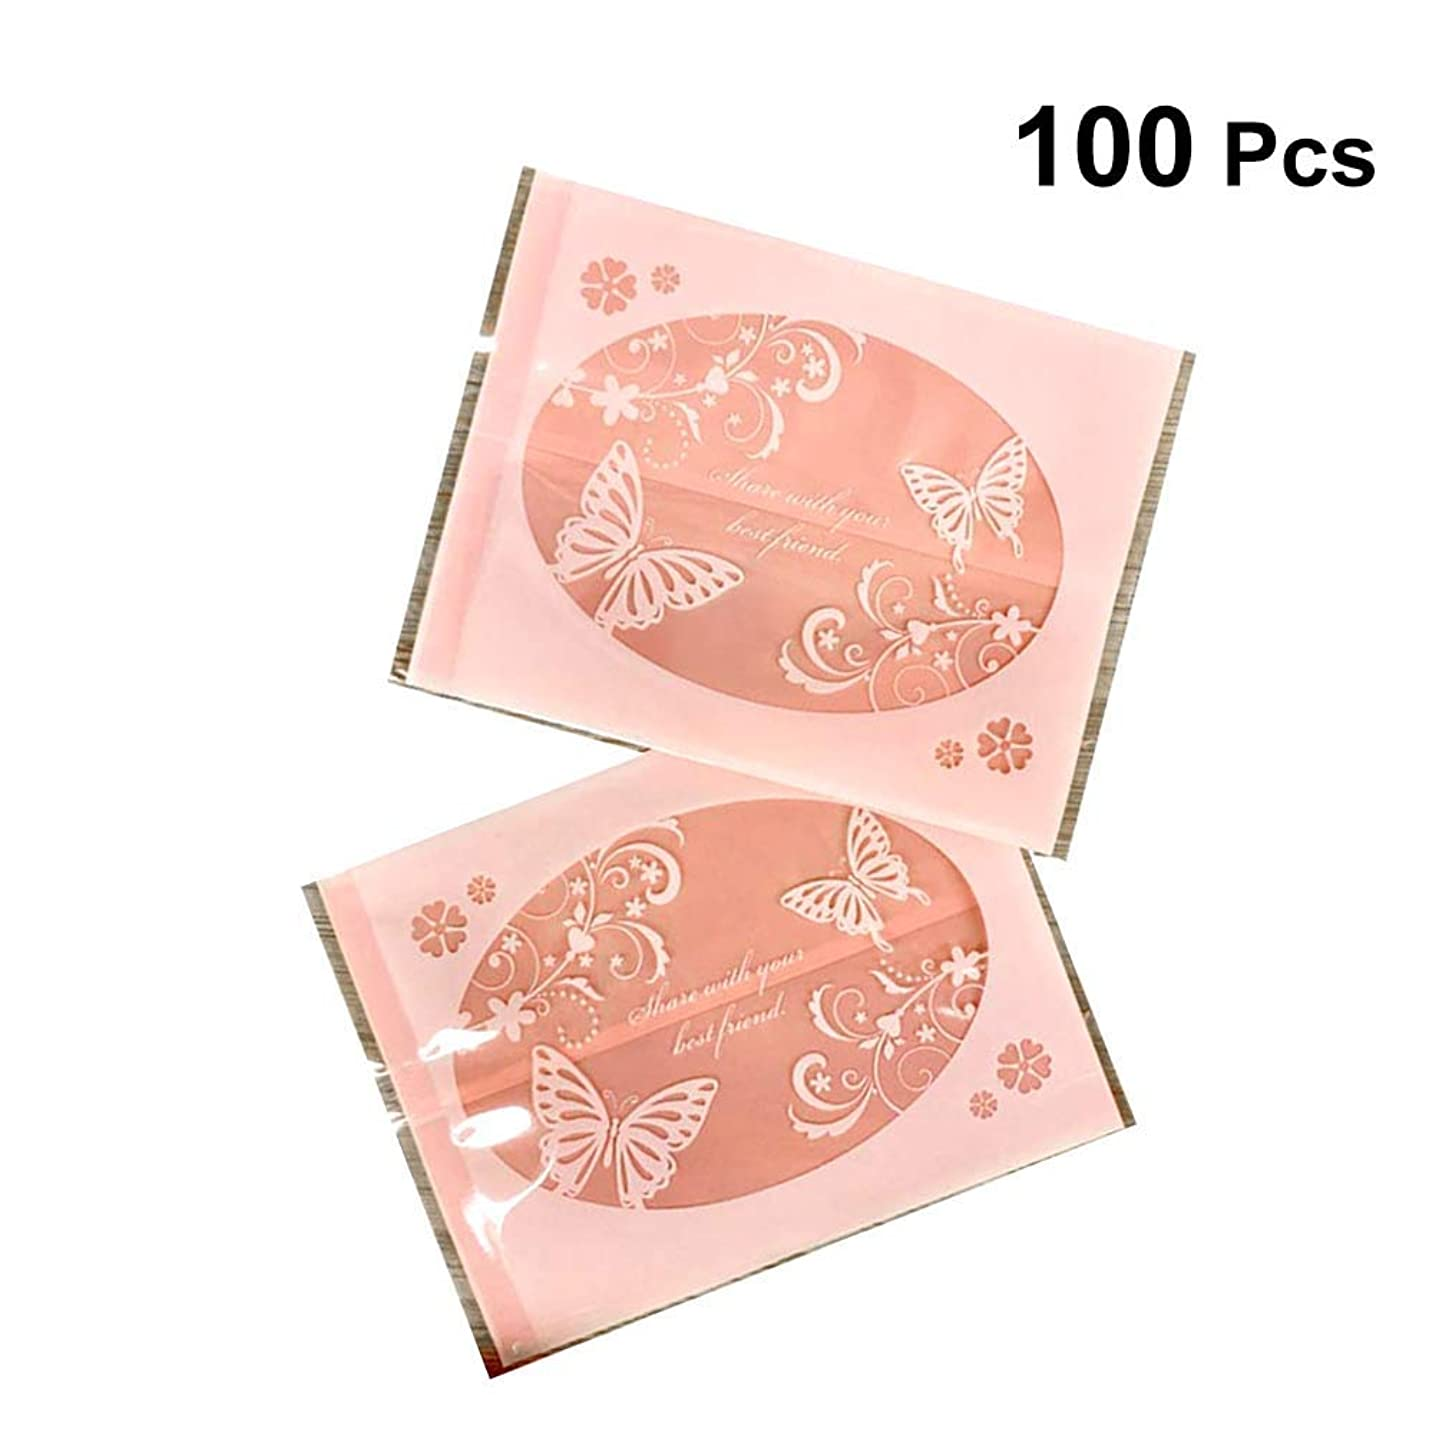 Toyvian Butterfly Pattern Treat Bag Nougat Cookies Pastry Dessert Bag Packing Bag Favor Bag Party Supplies 100pcs (Pink)